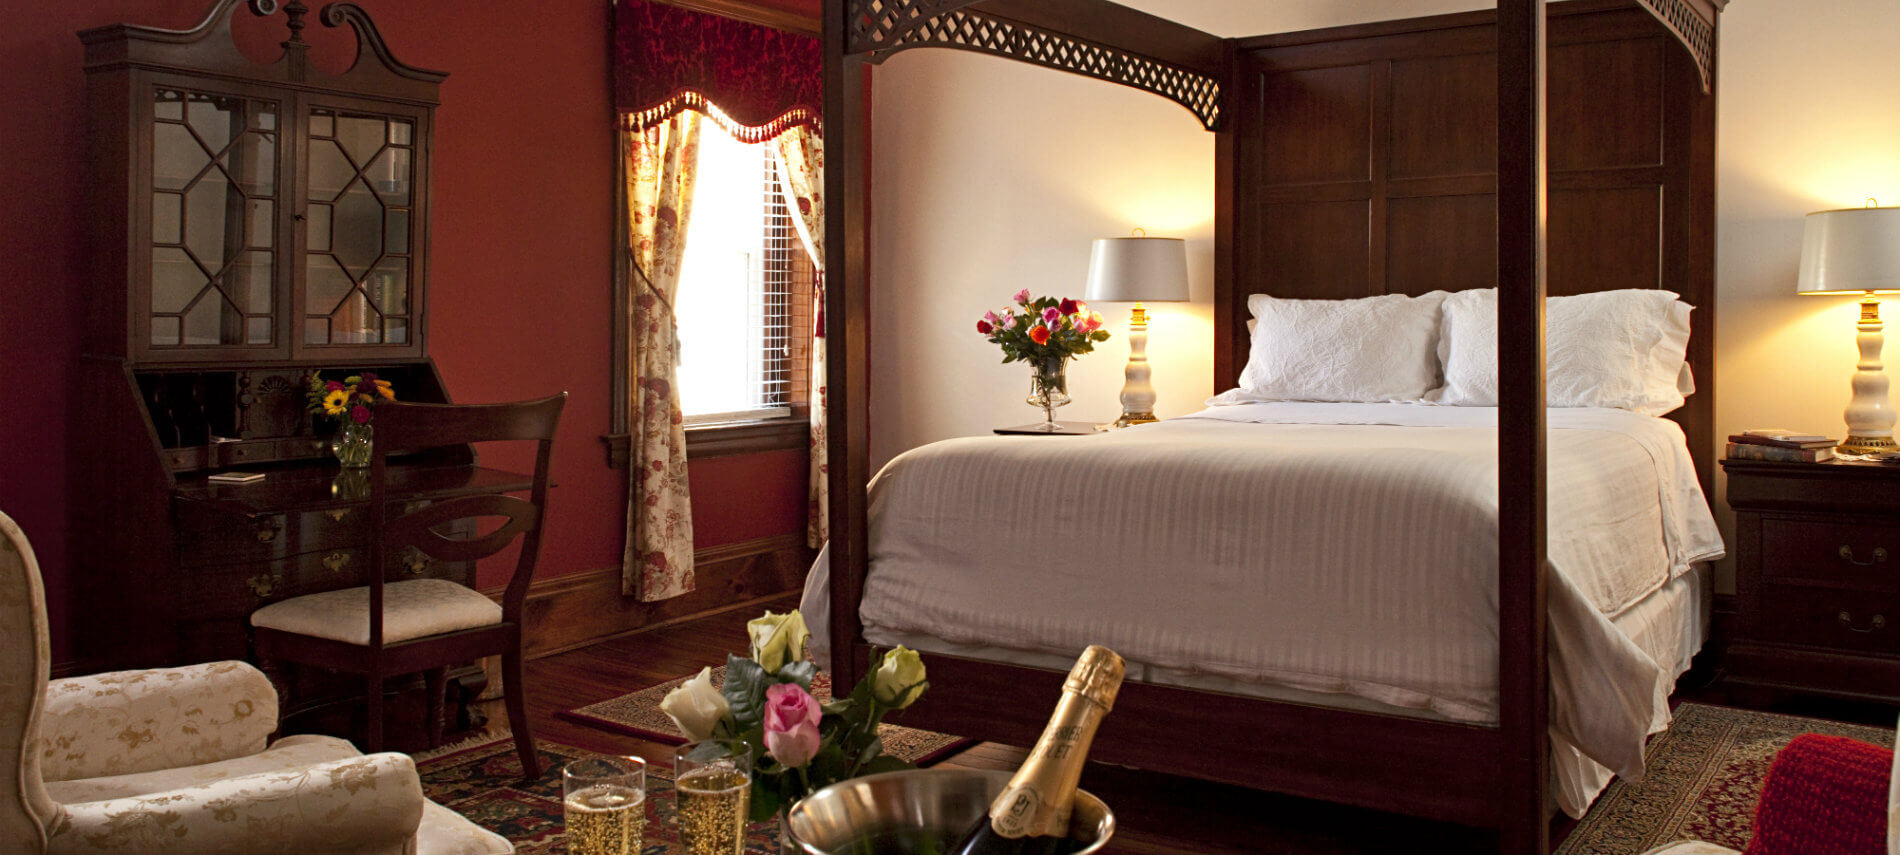 Large elegant room with four-poster bed and burgundy walls